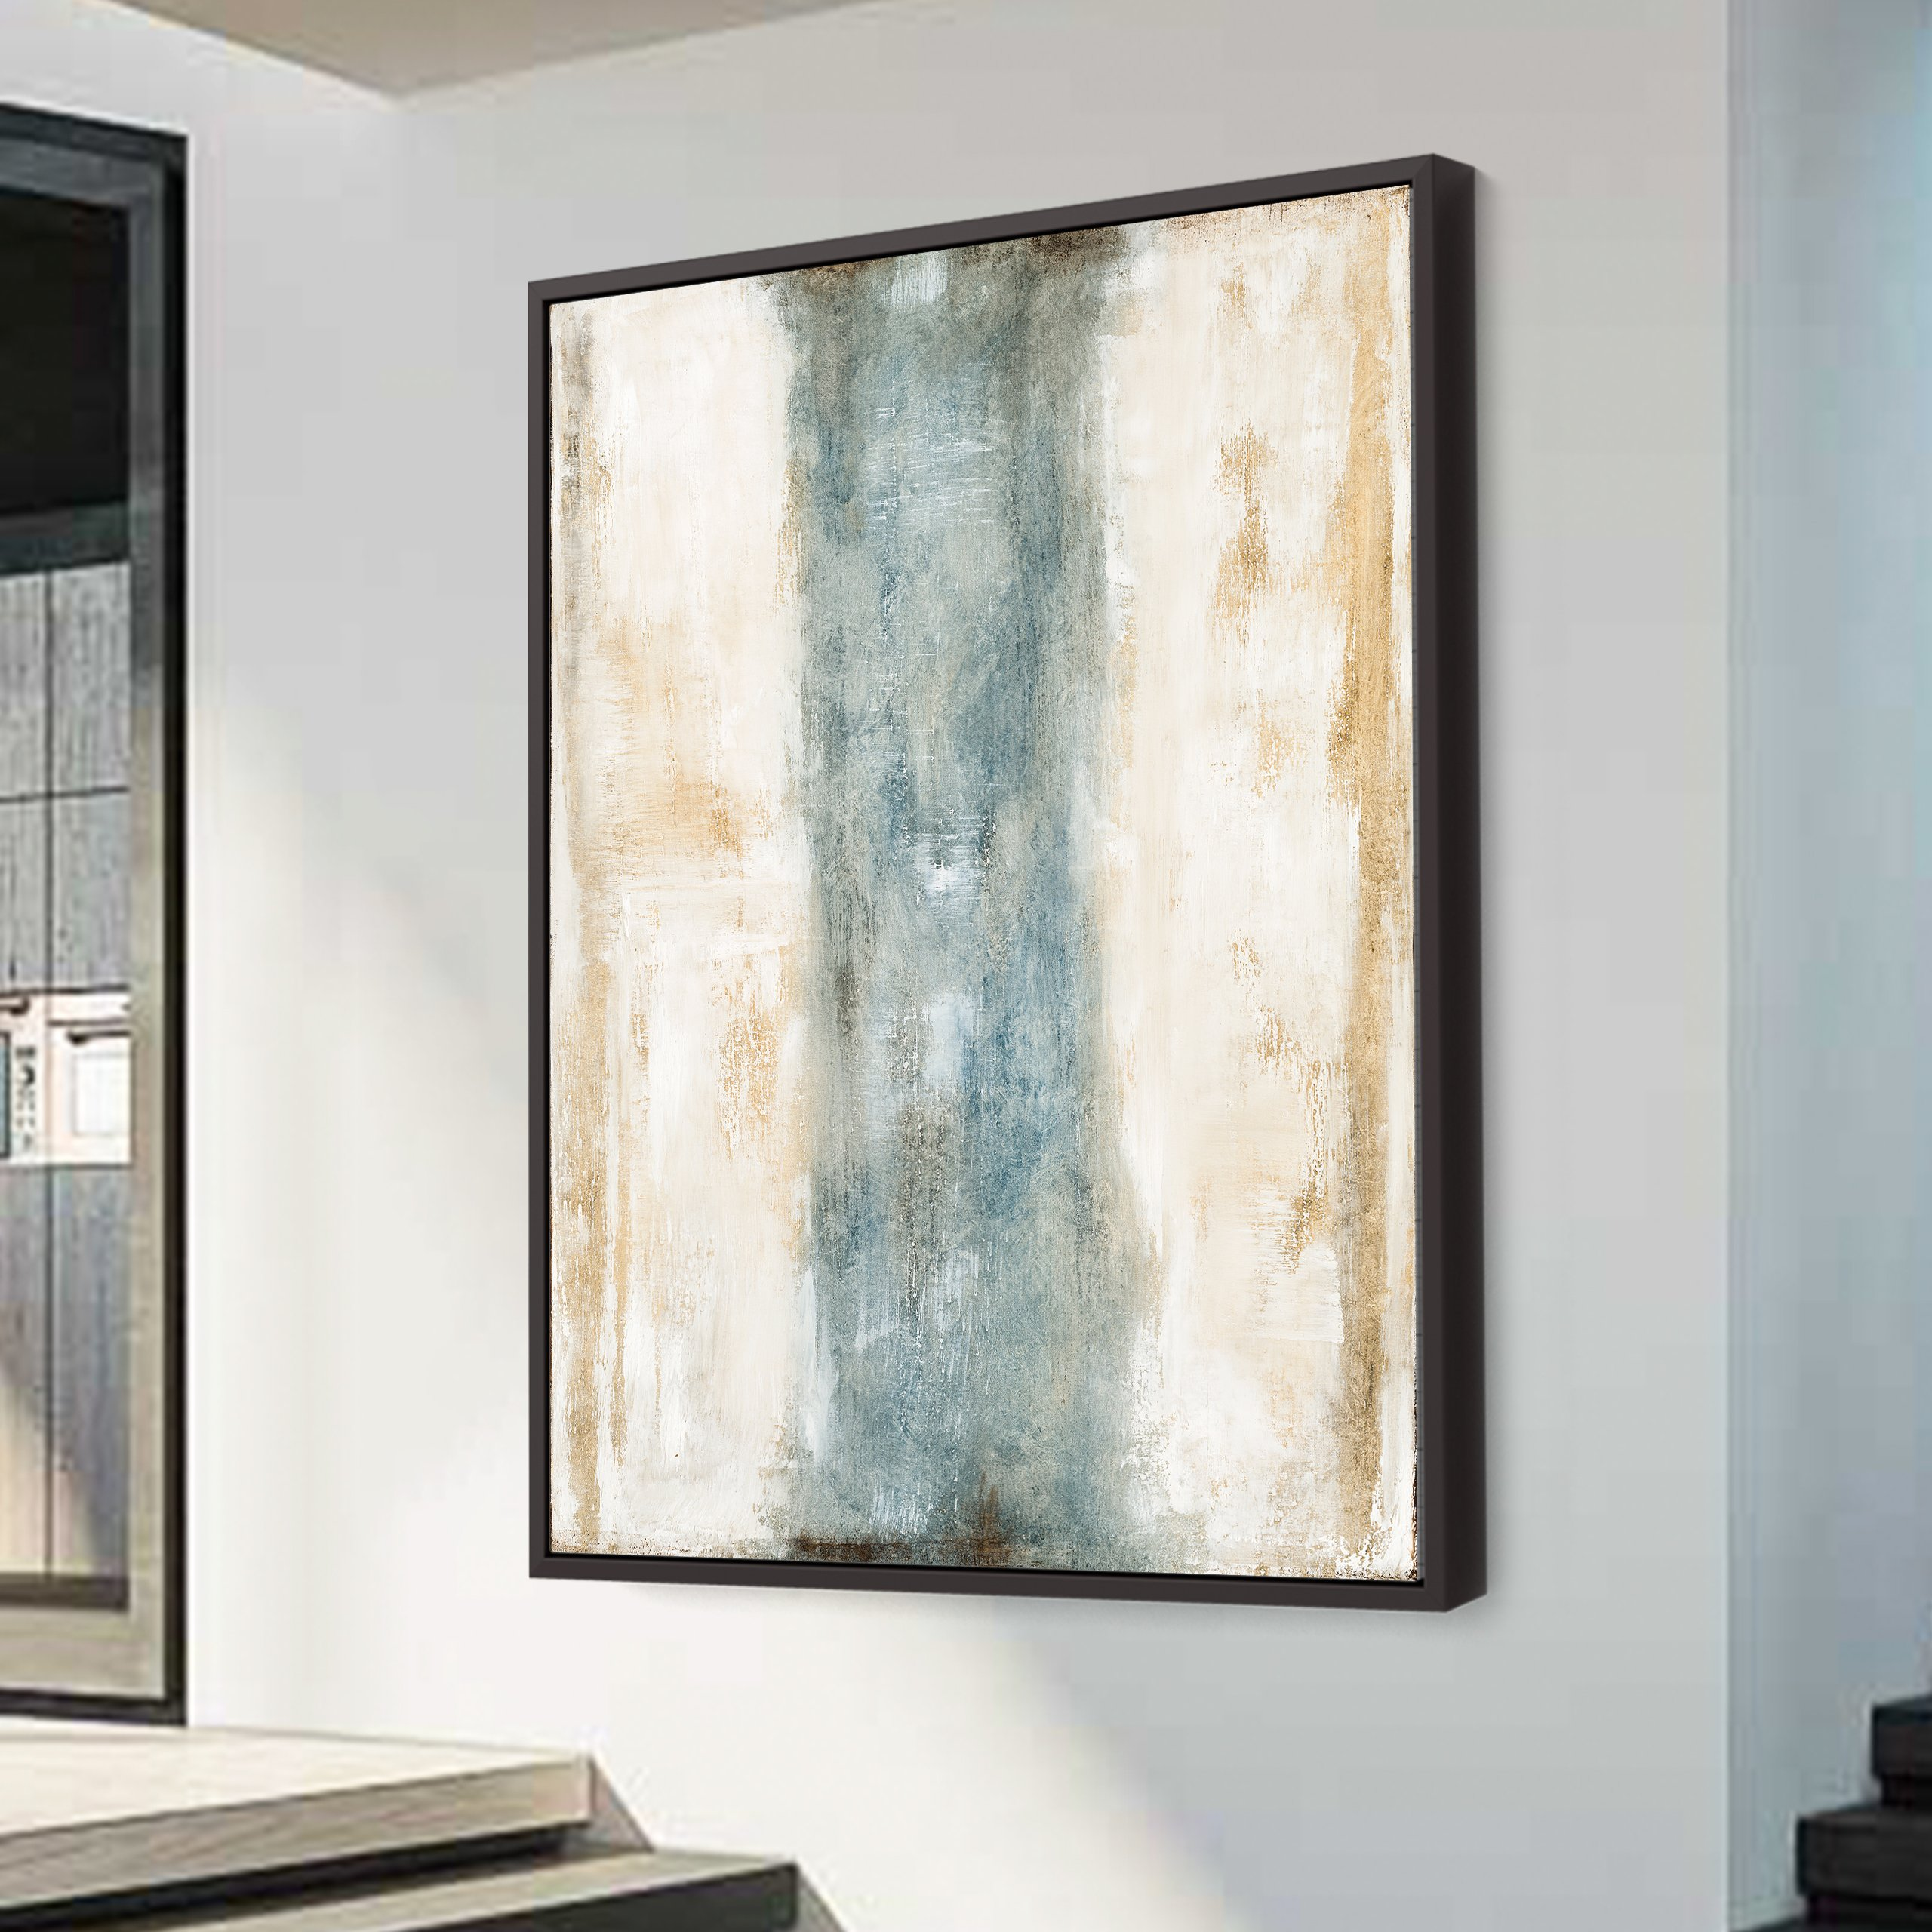 White and light blue, teal abstract art for wall design and decoration